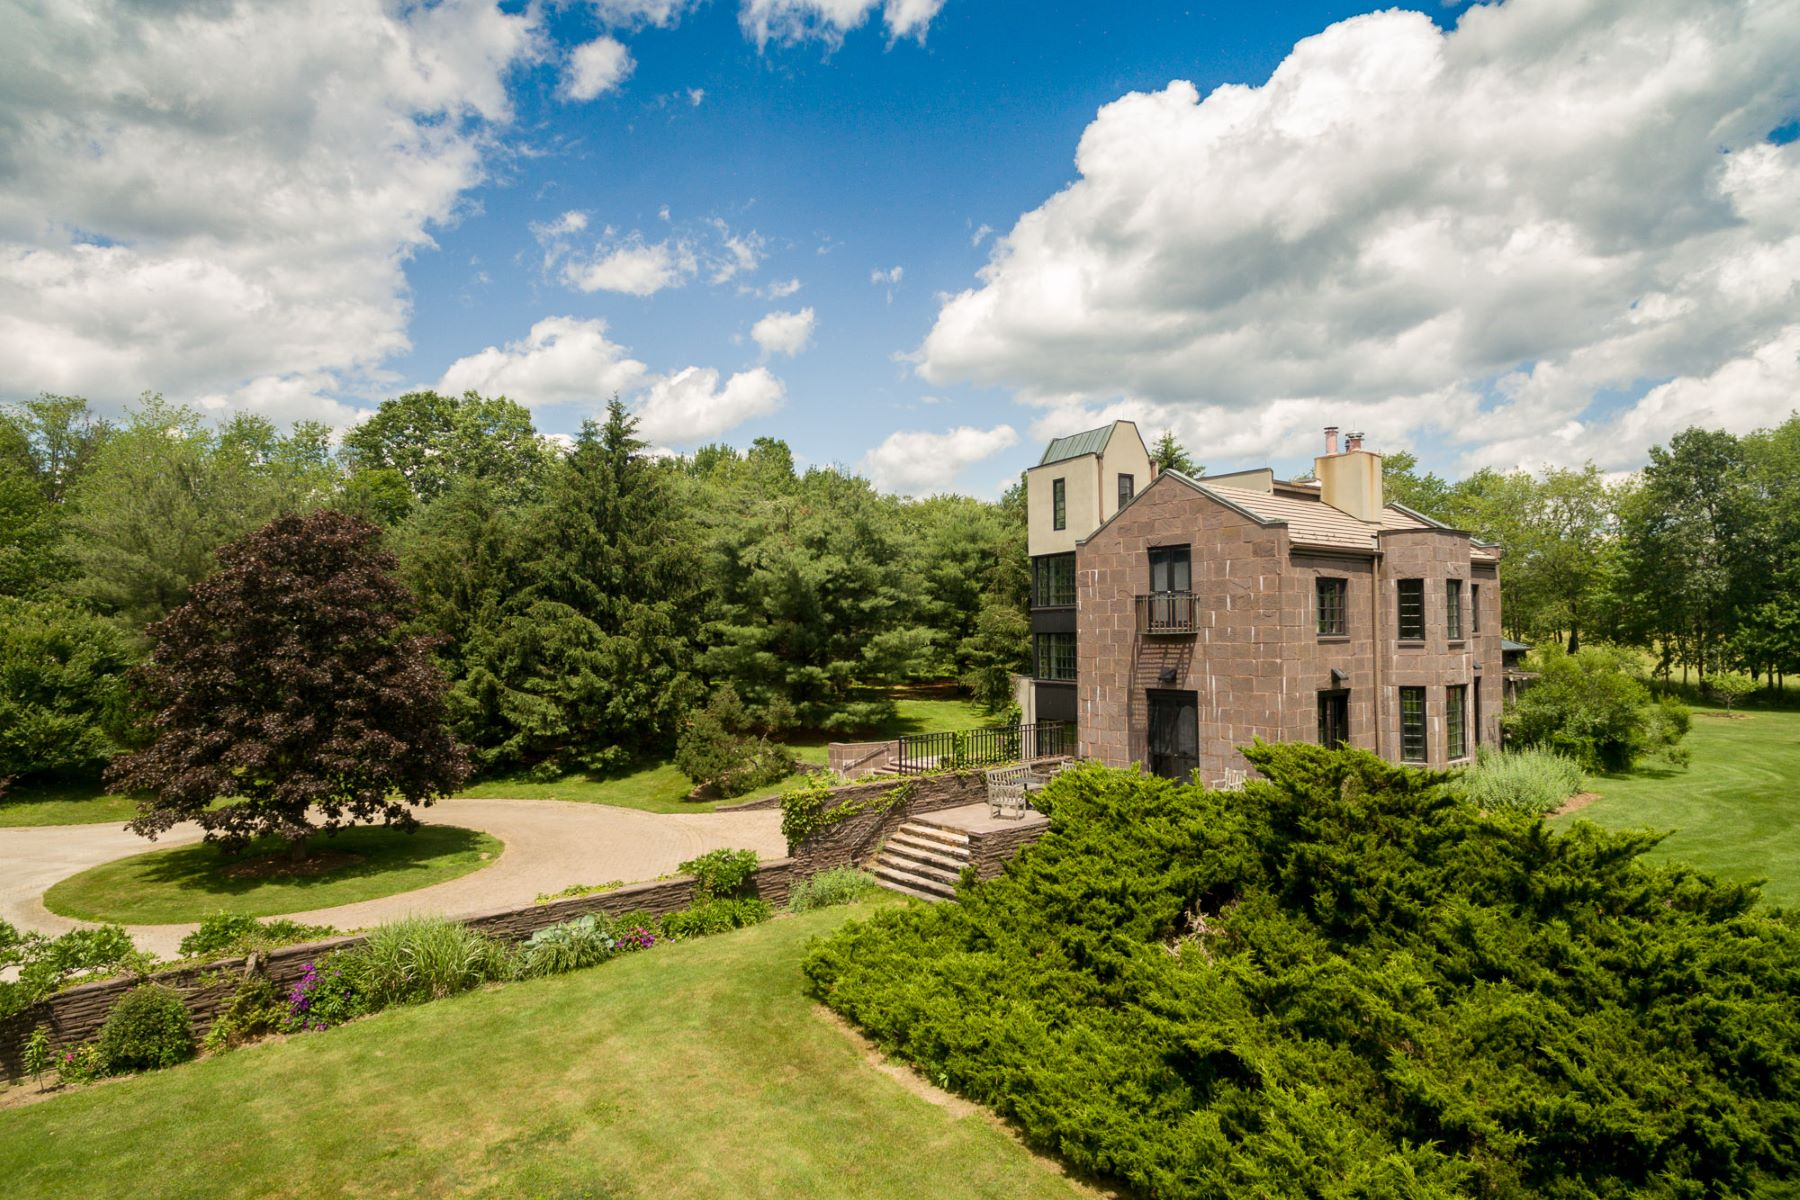 Additional photo for property listing at Tower Hall 35 Killearn Road Millbrook, New York 12545 United States